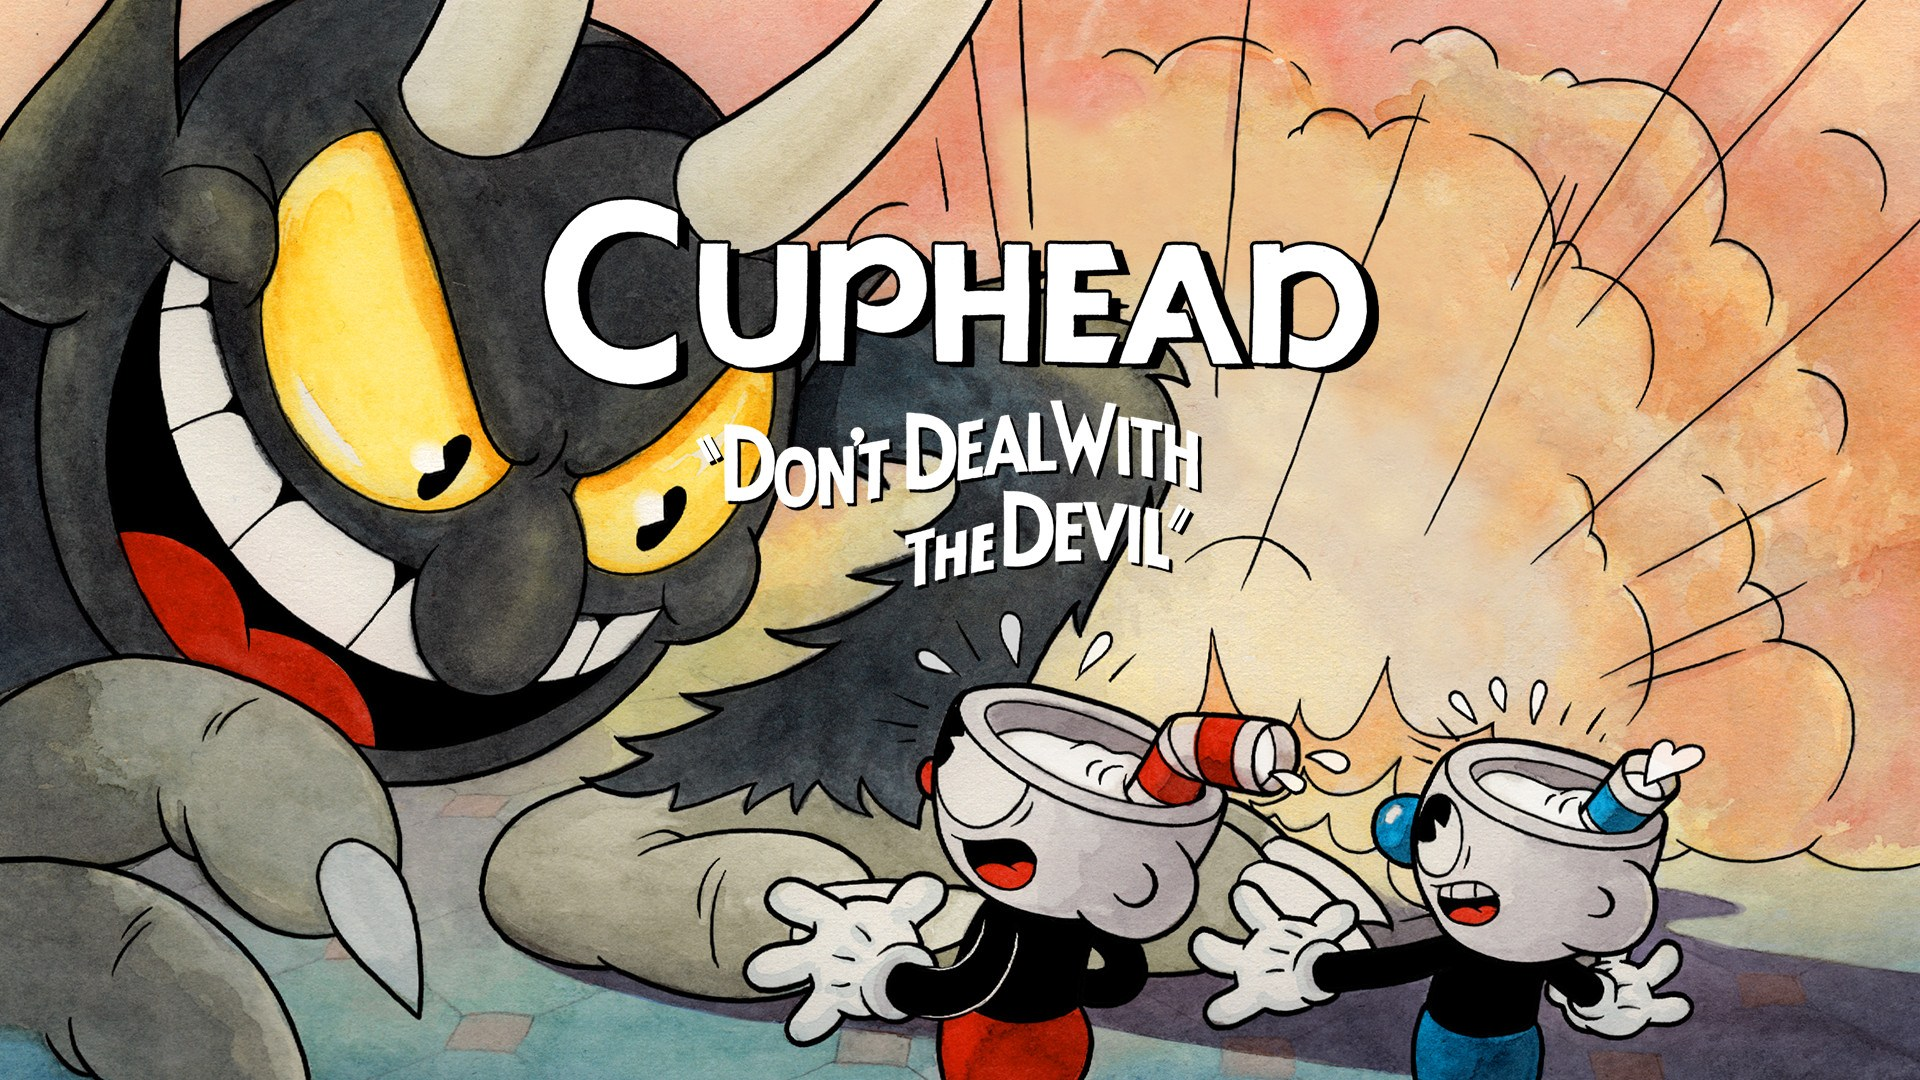 cuphead_1920x1080_titled_hero_art